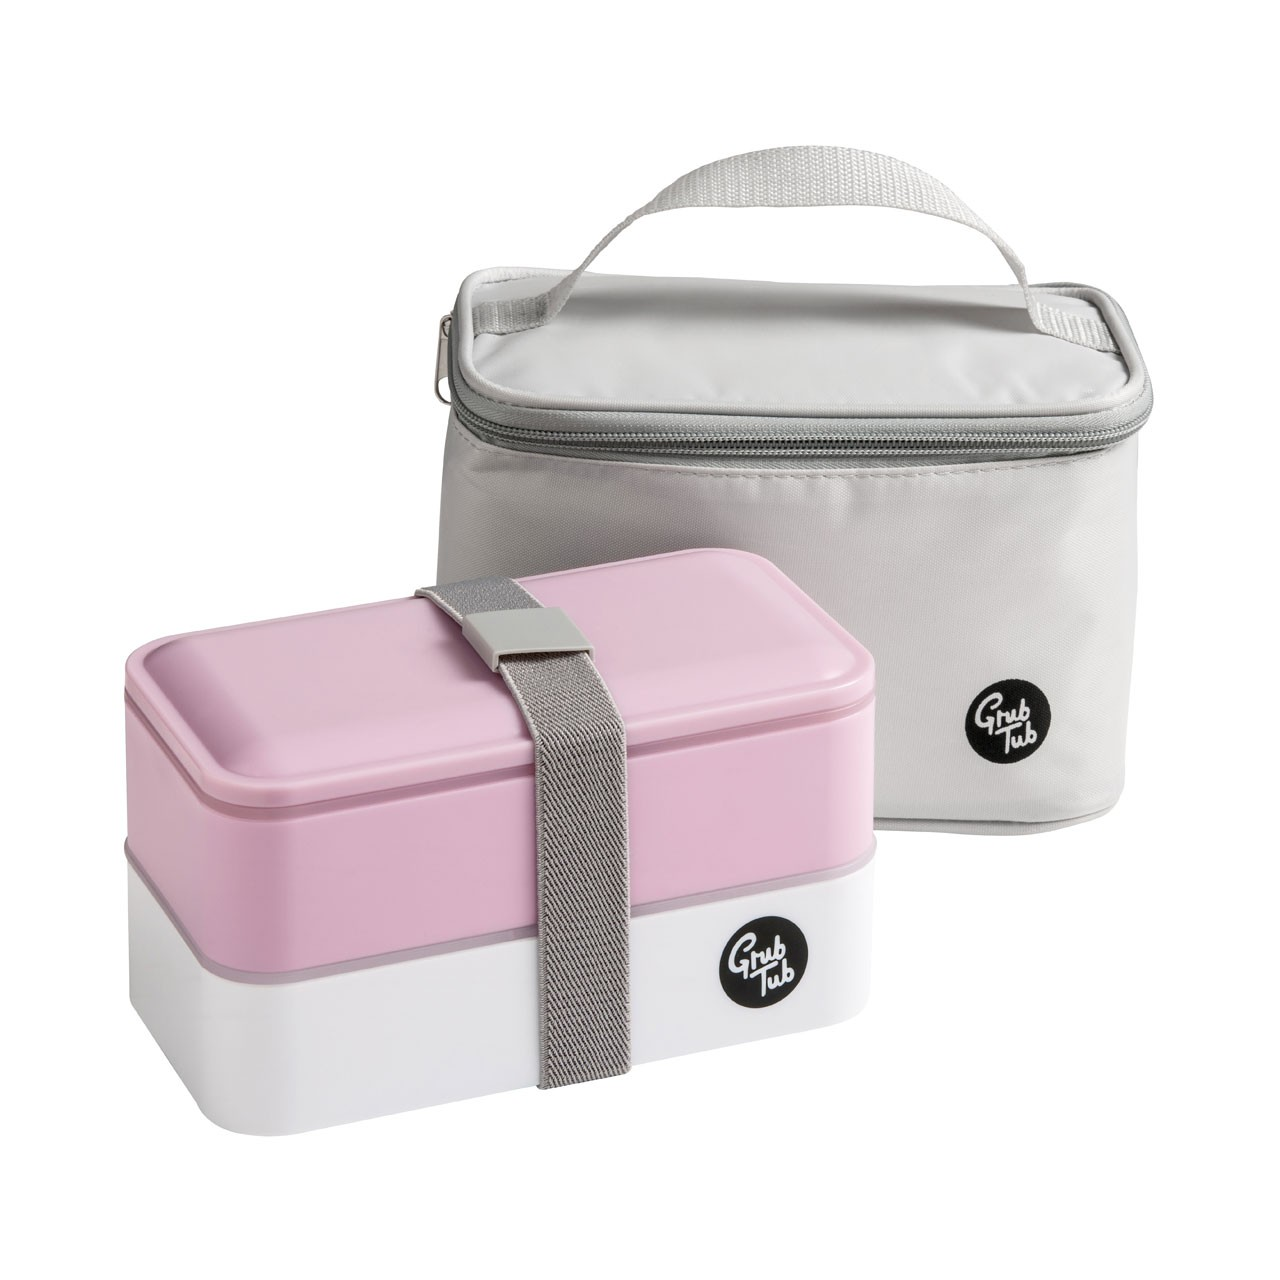 Grub Tub Lunch Box with 2 Containers/Cool Bag/Cutlery-Light Pink